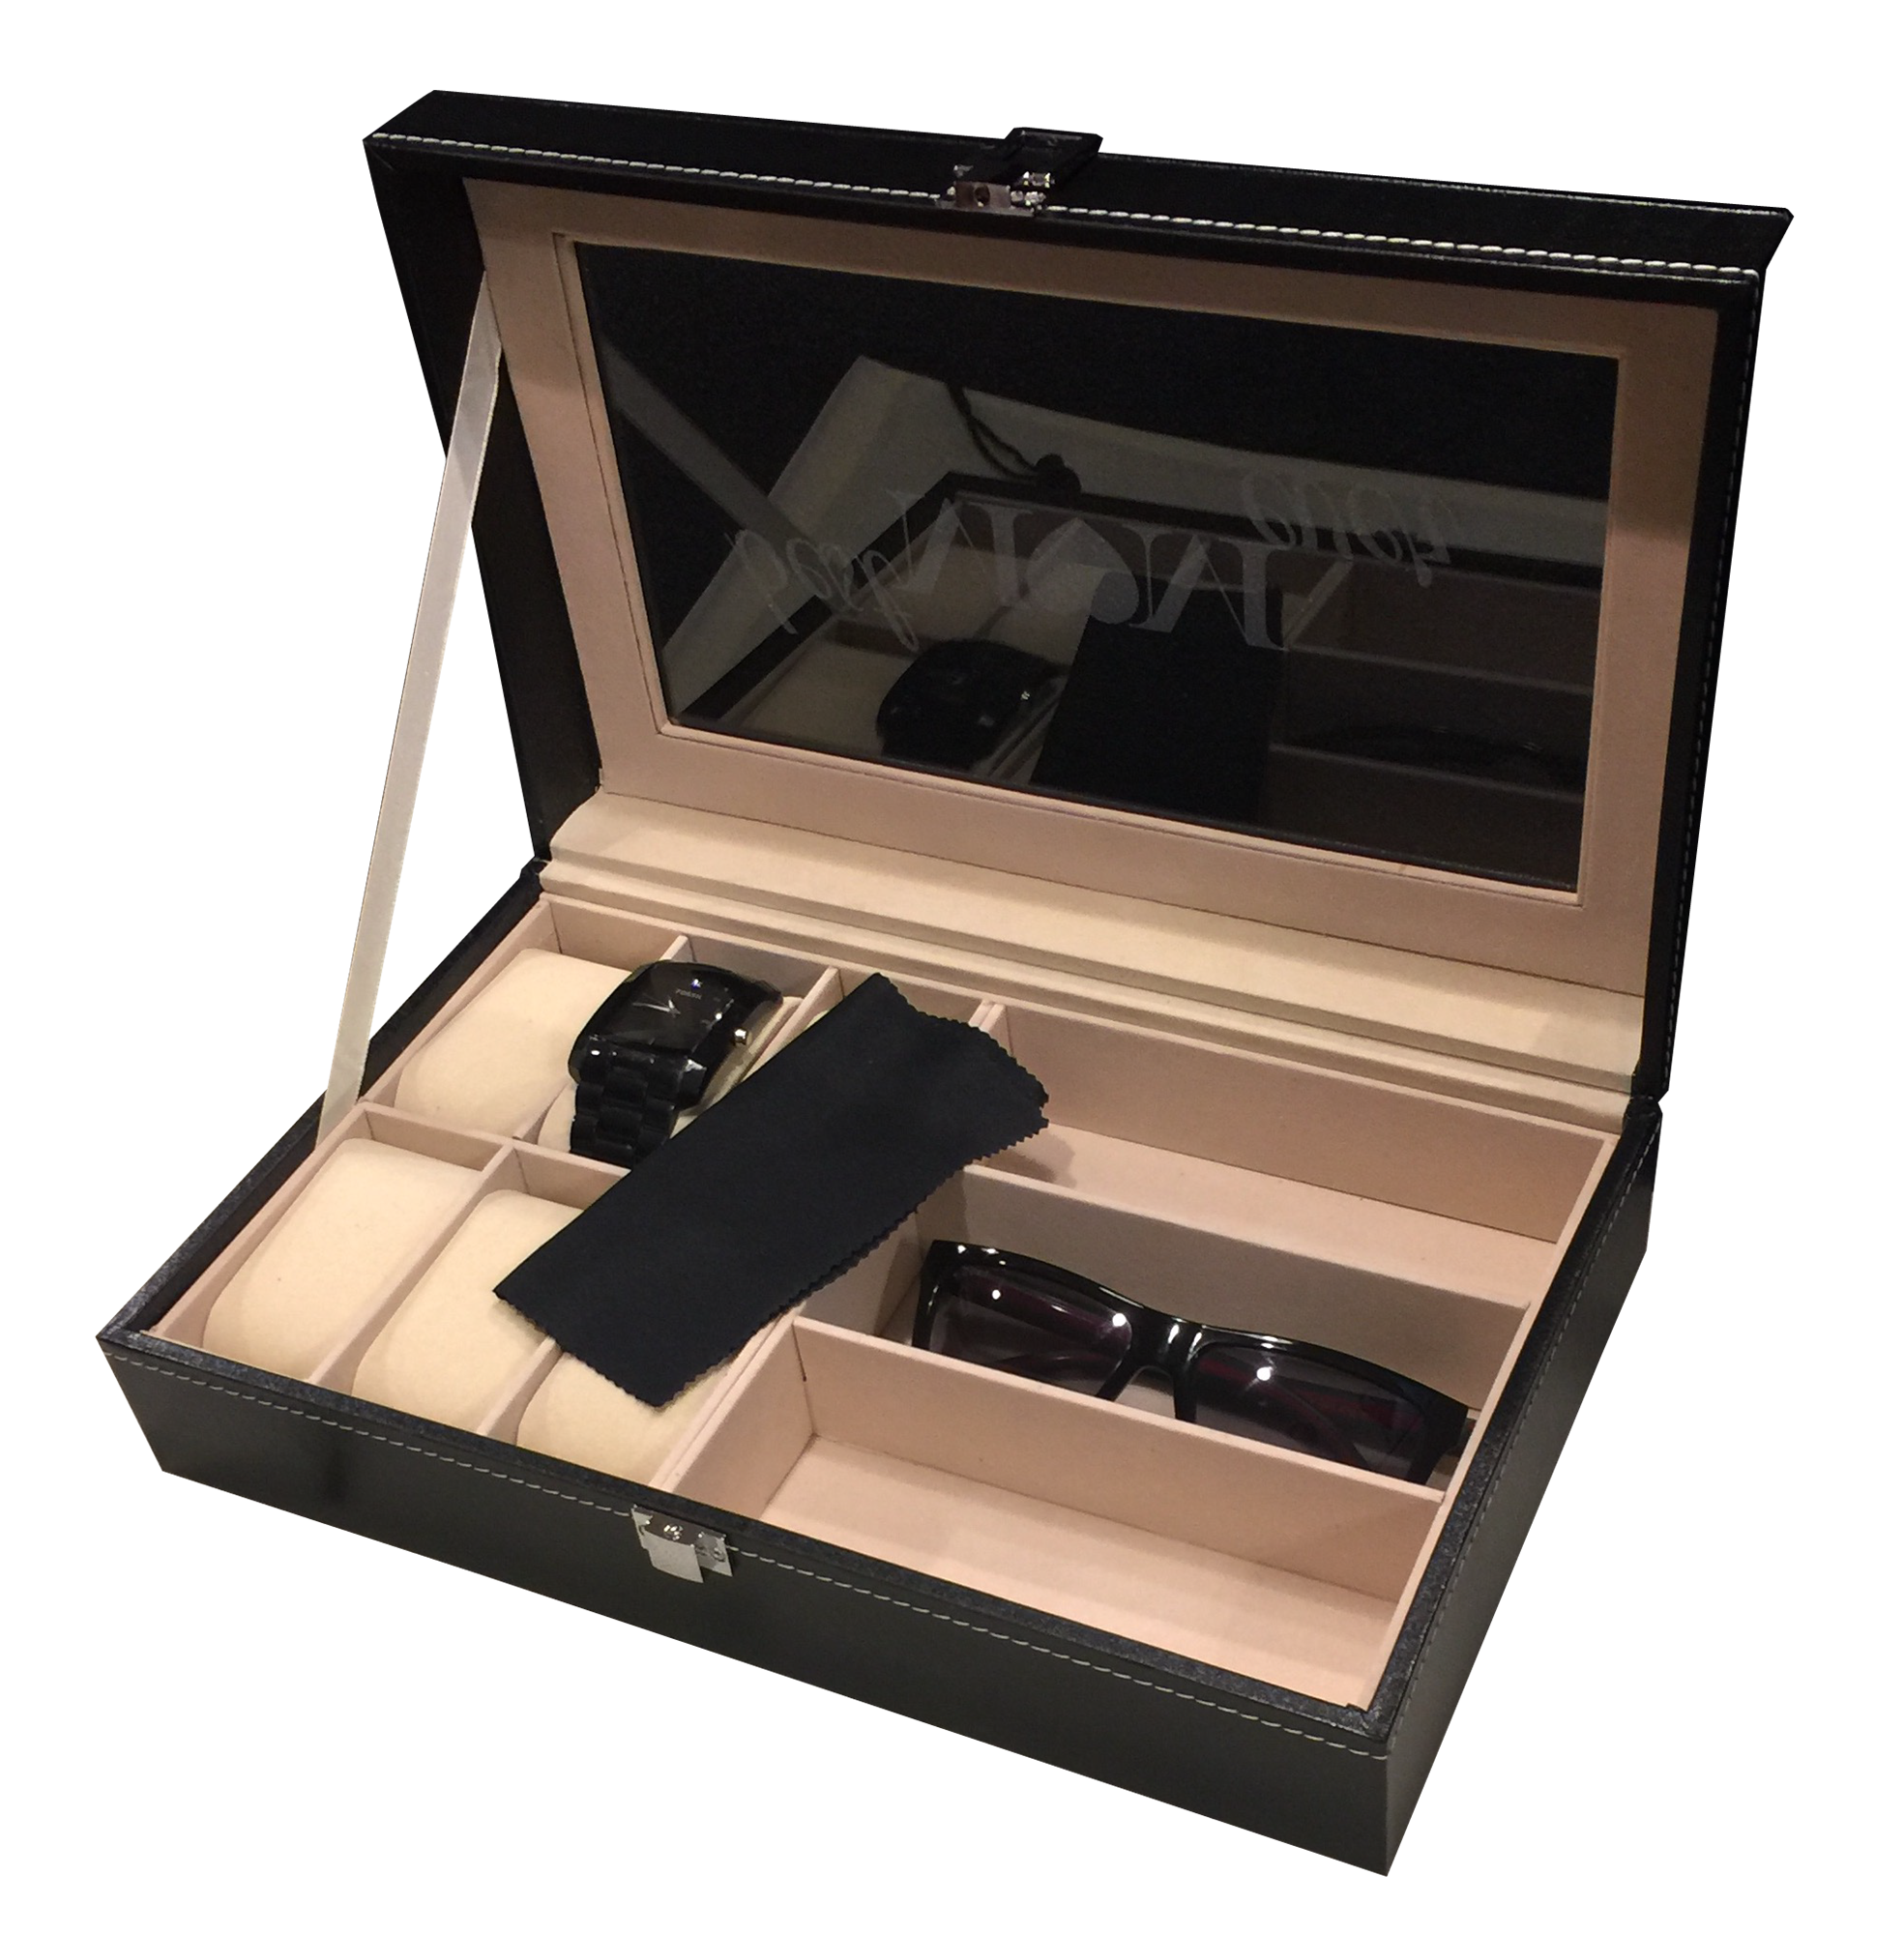 Watch and Sunglass Display Case Engraved Personalized Watch Box